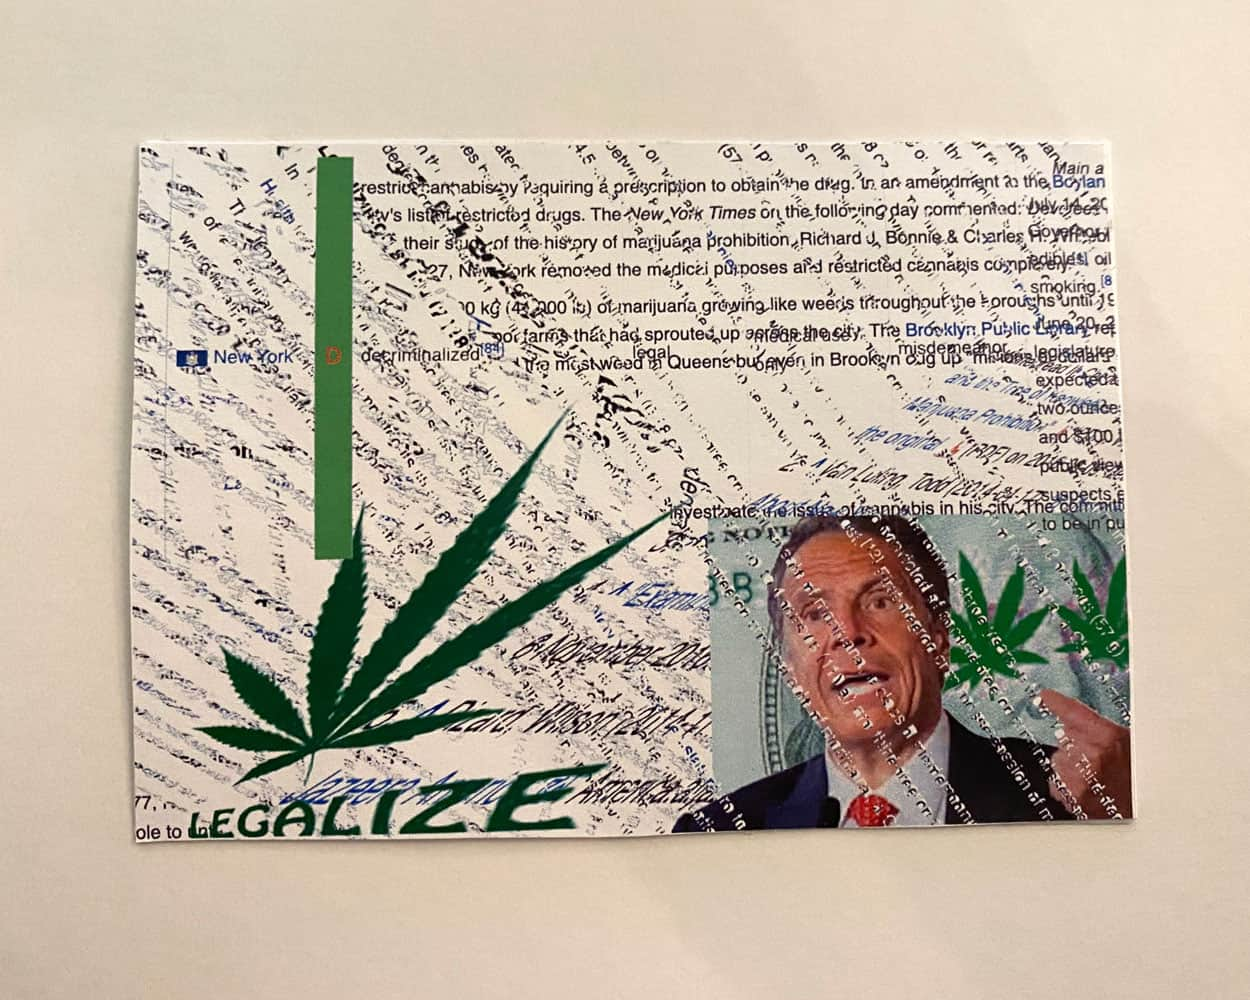 A postcard with distorted text and an image of a cannabis leaf on the bottom left corner, and an Image of Andrew Cuomo on the bottom right.